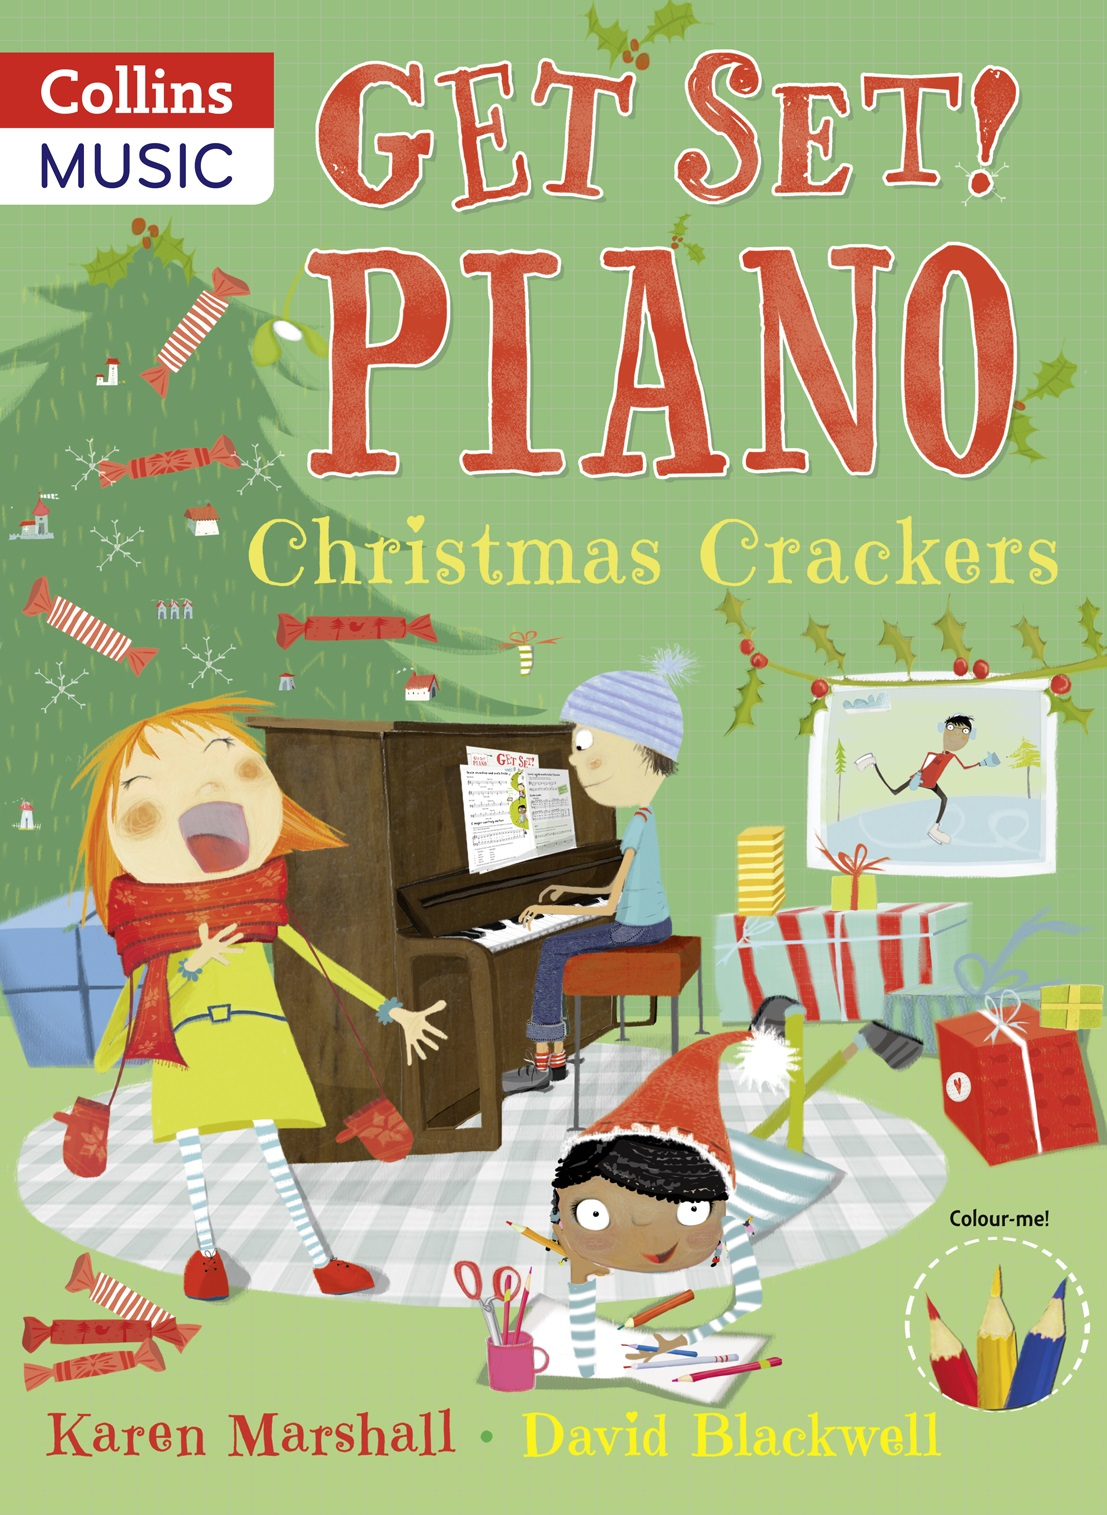 Get Set! Piano Christmas Crackers Review